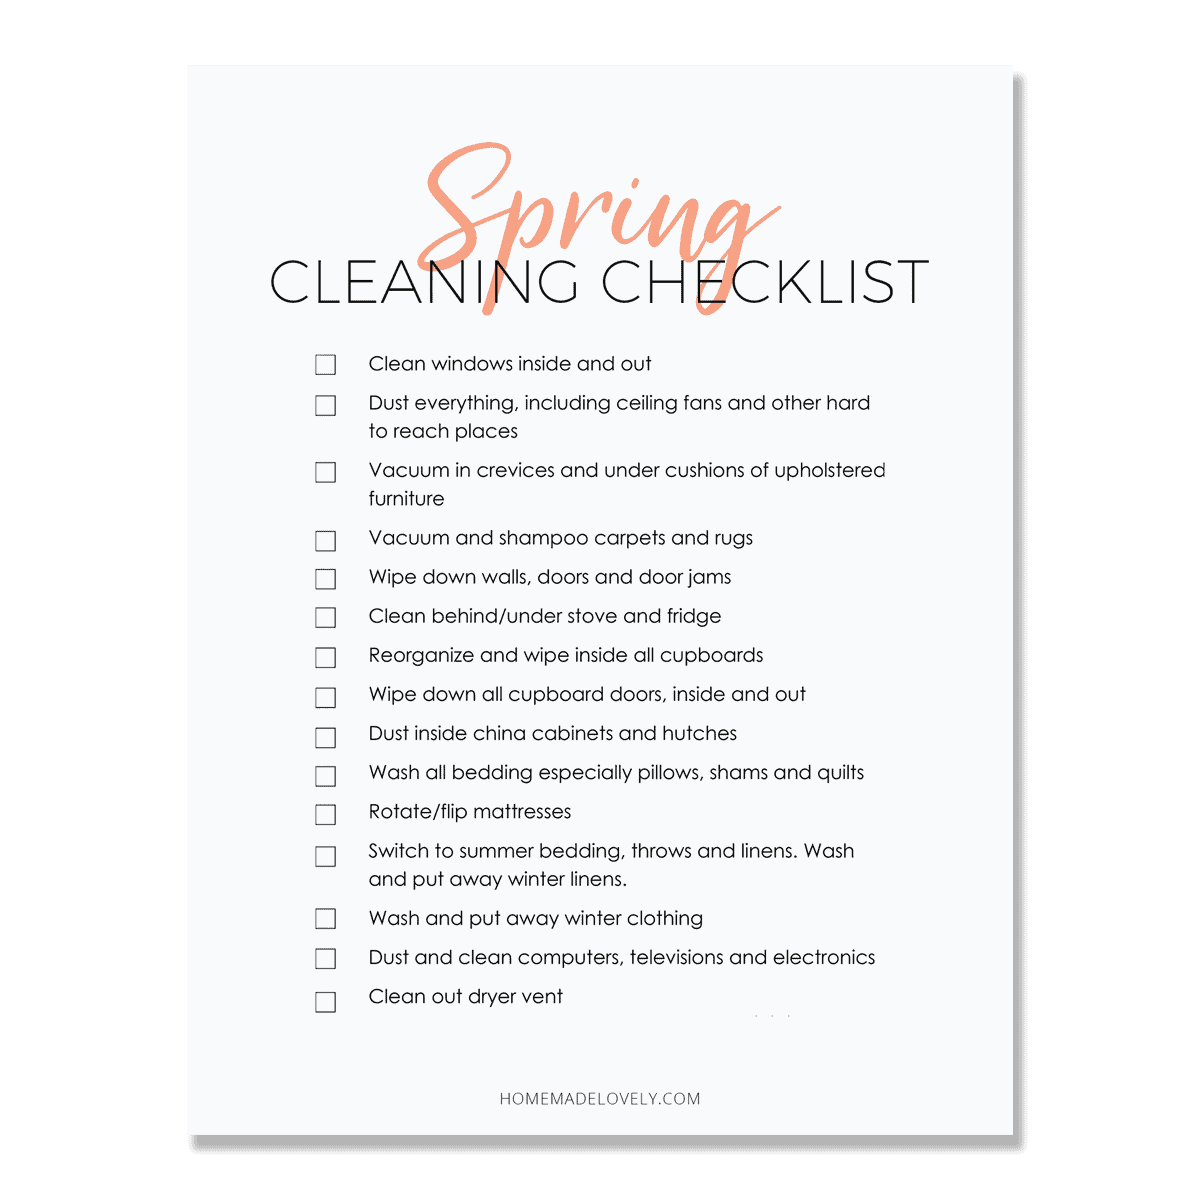 spring cleaning checklist on paper with shadow background